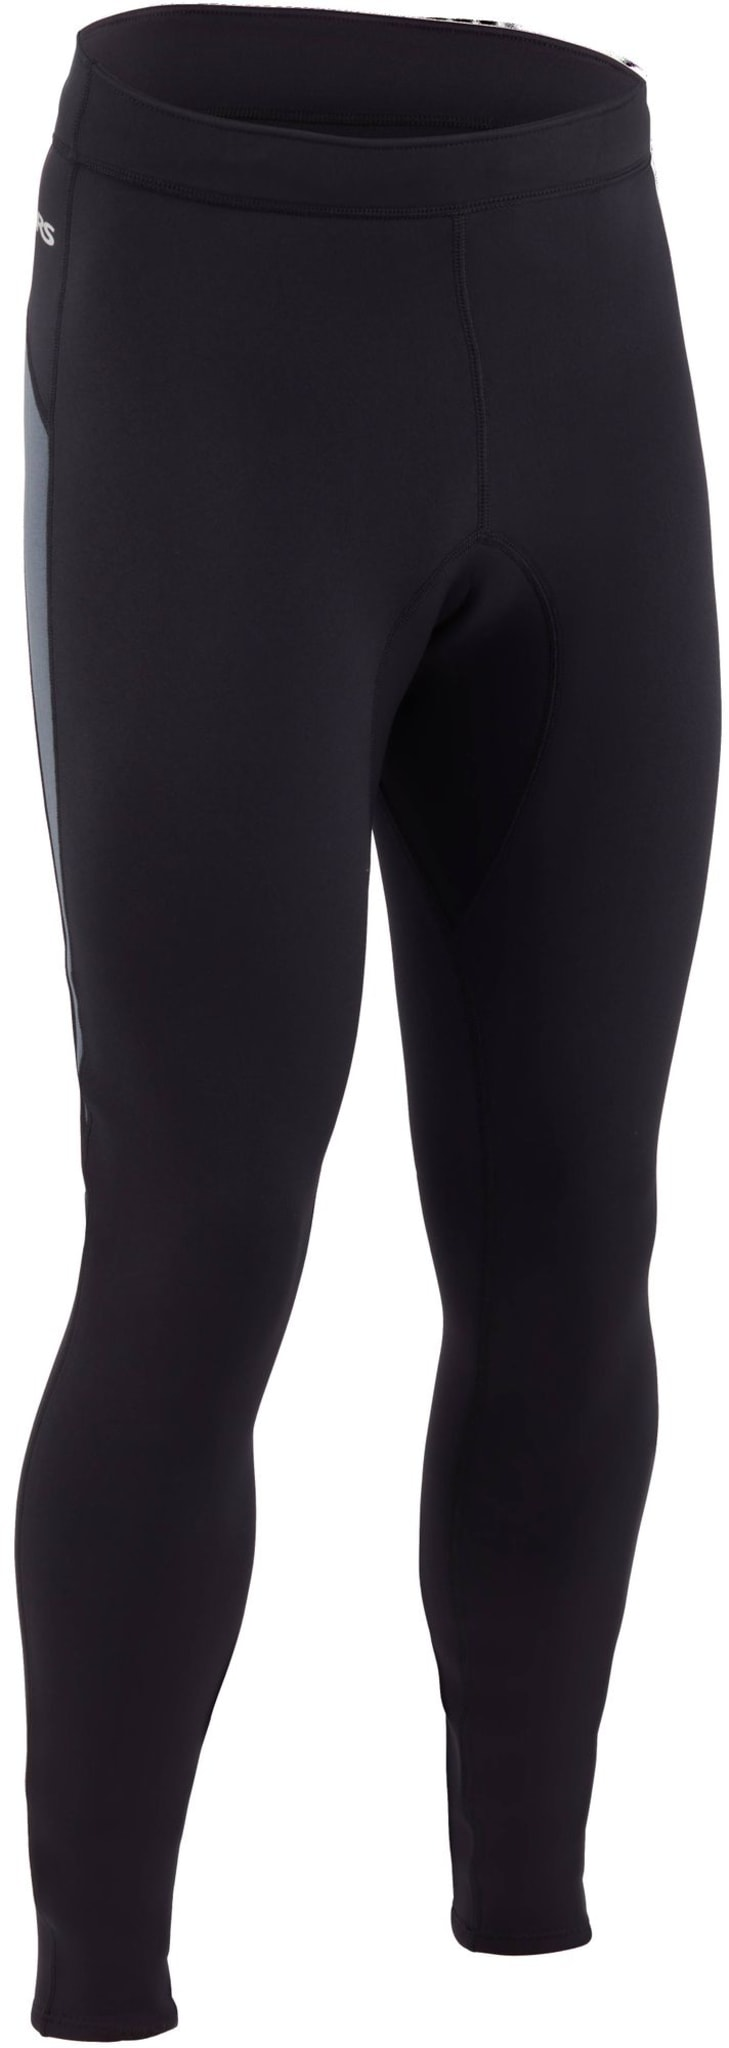 NRS Men's Ignitor Pant